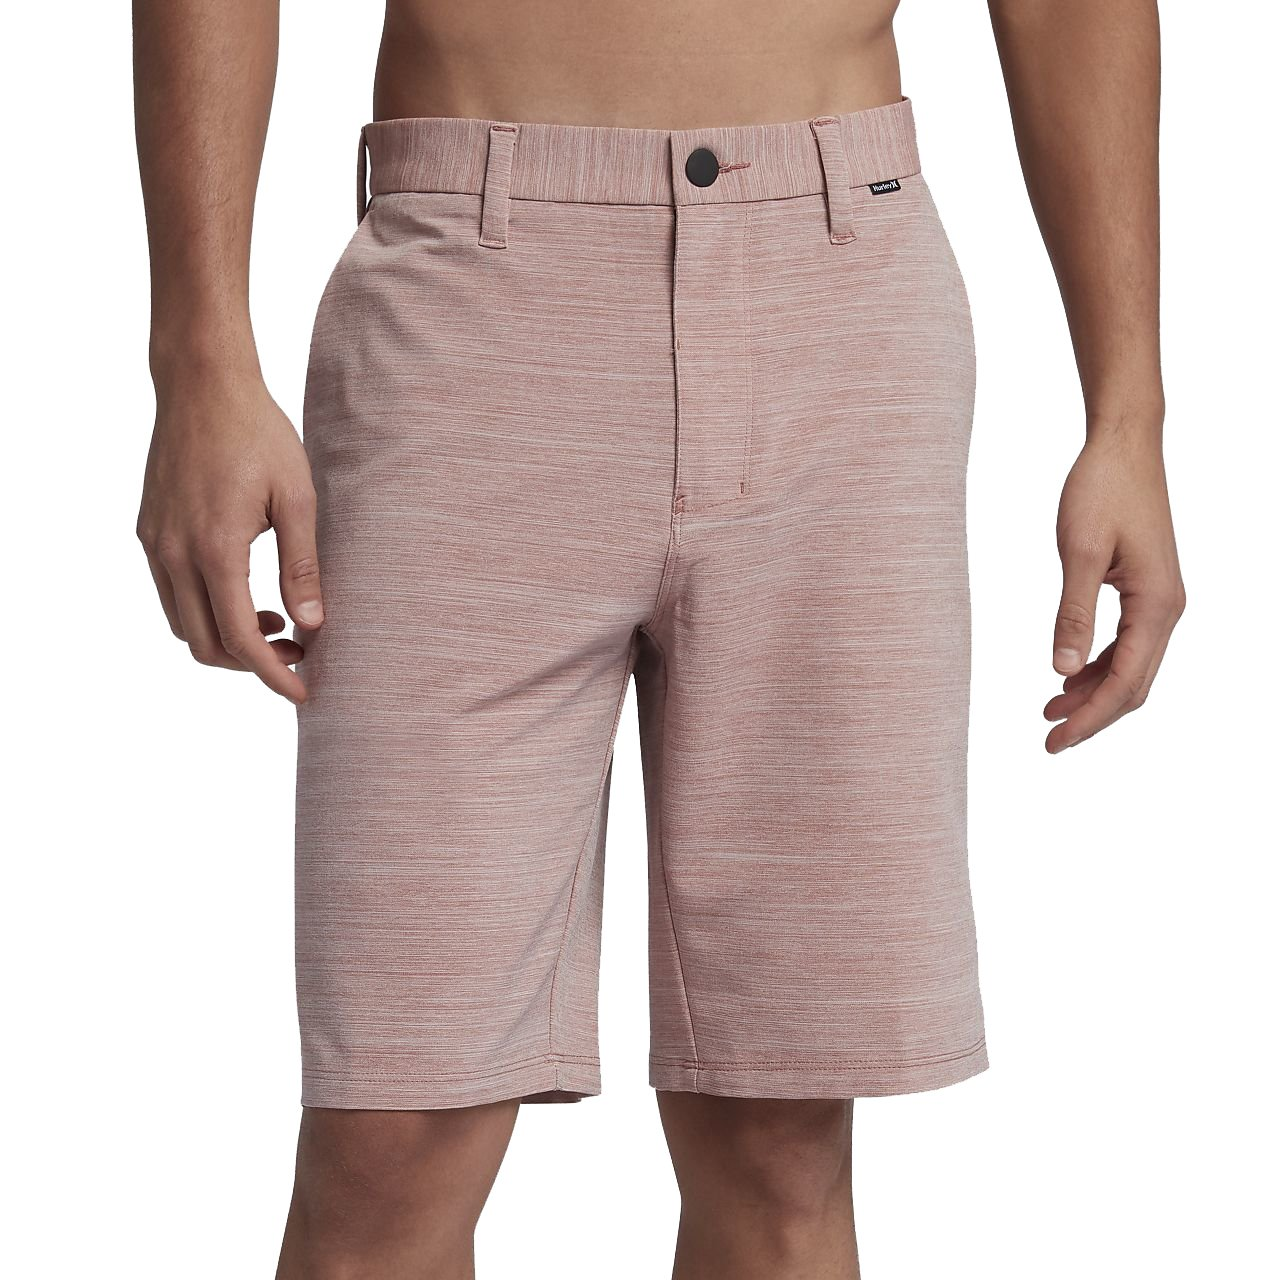 Hurley AJ6449 Men's Dri-FIT Cutback Short, Mars Stone - 38